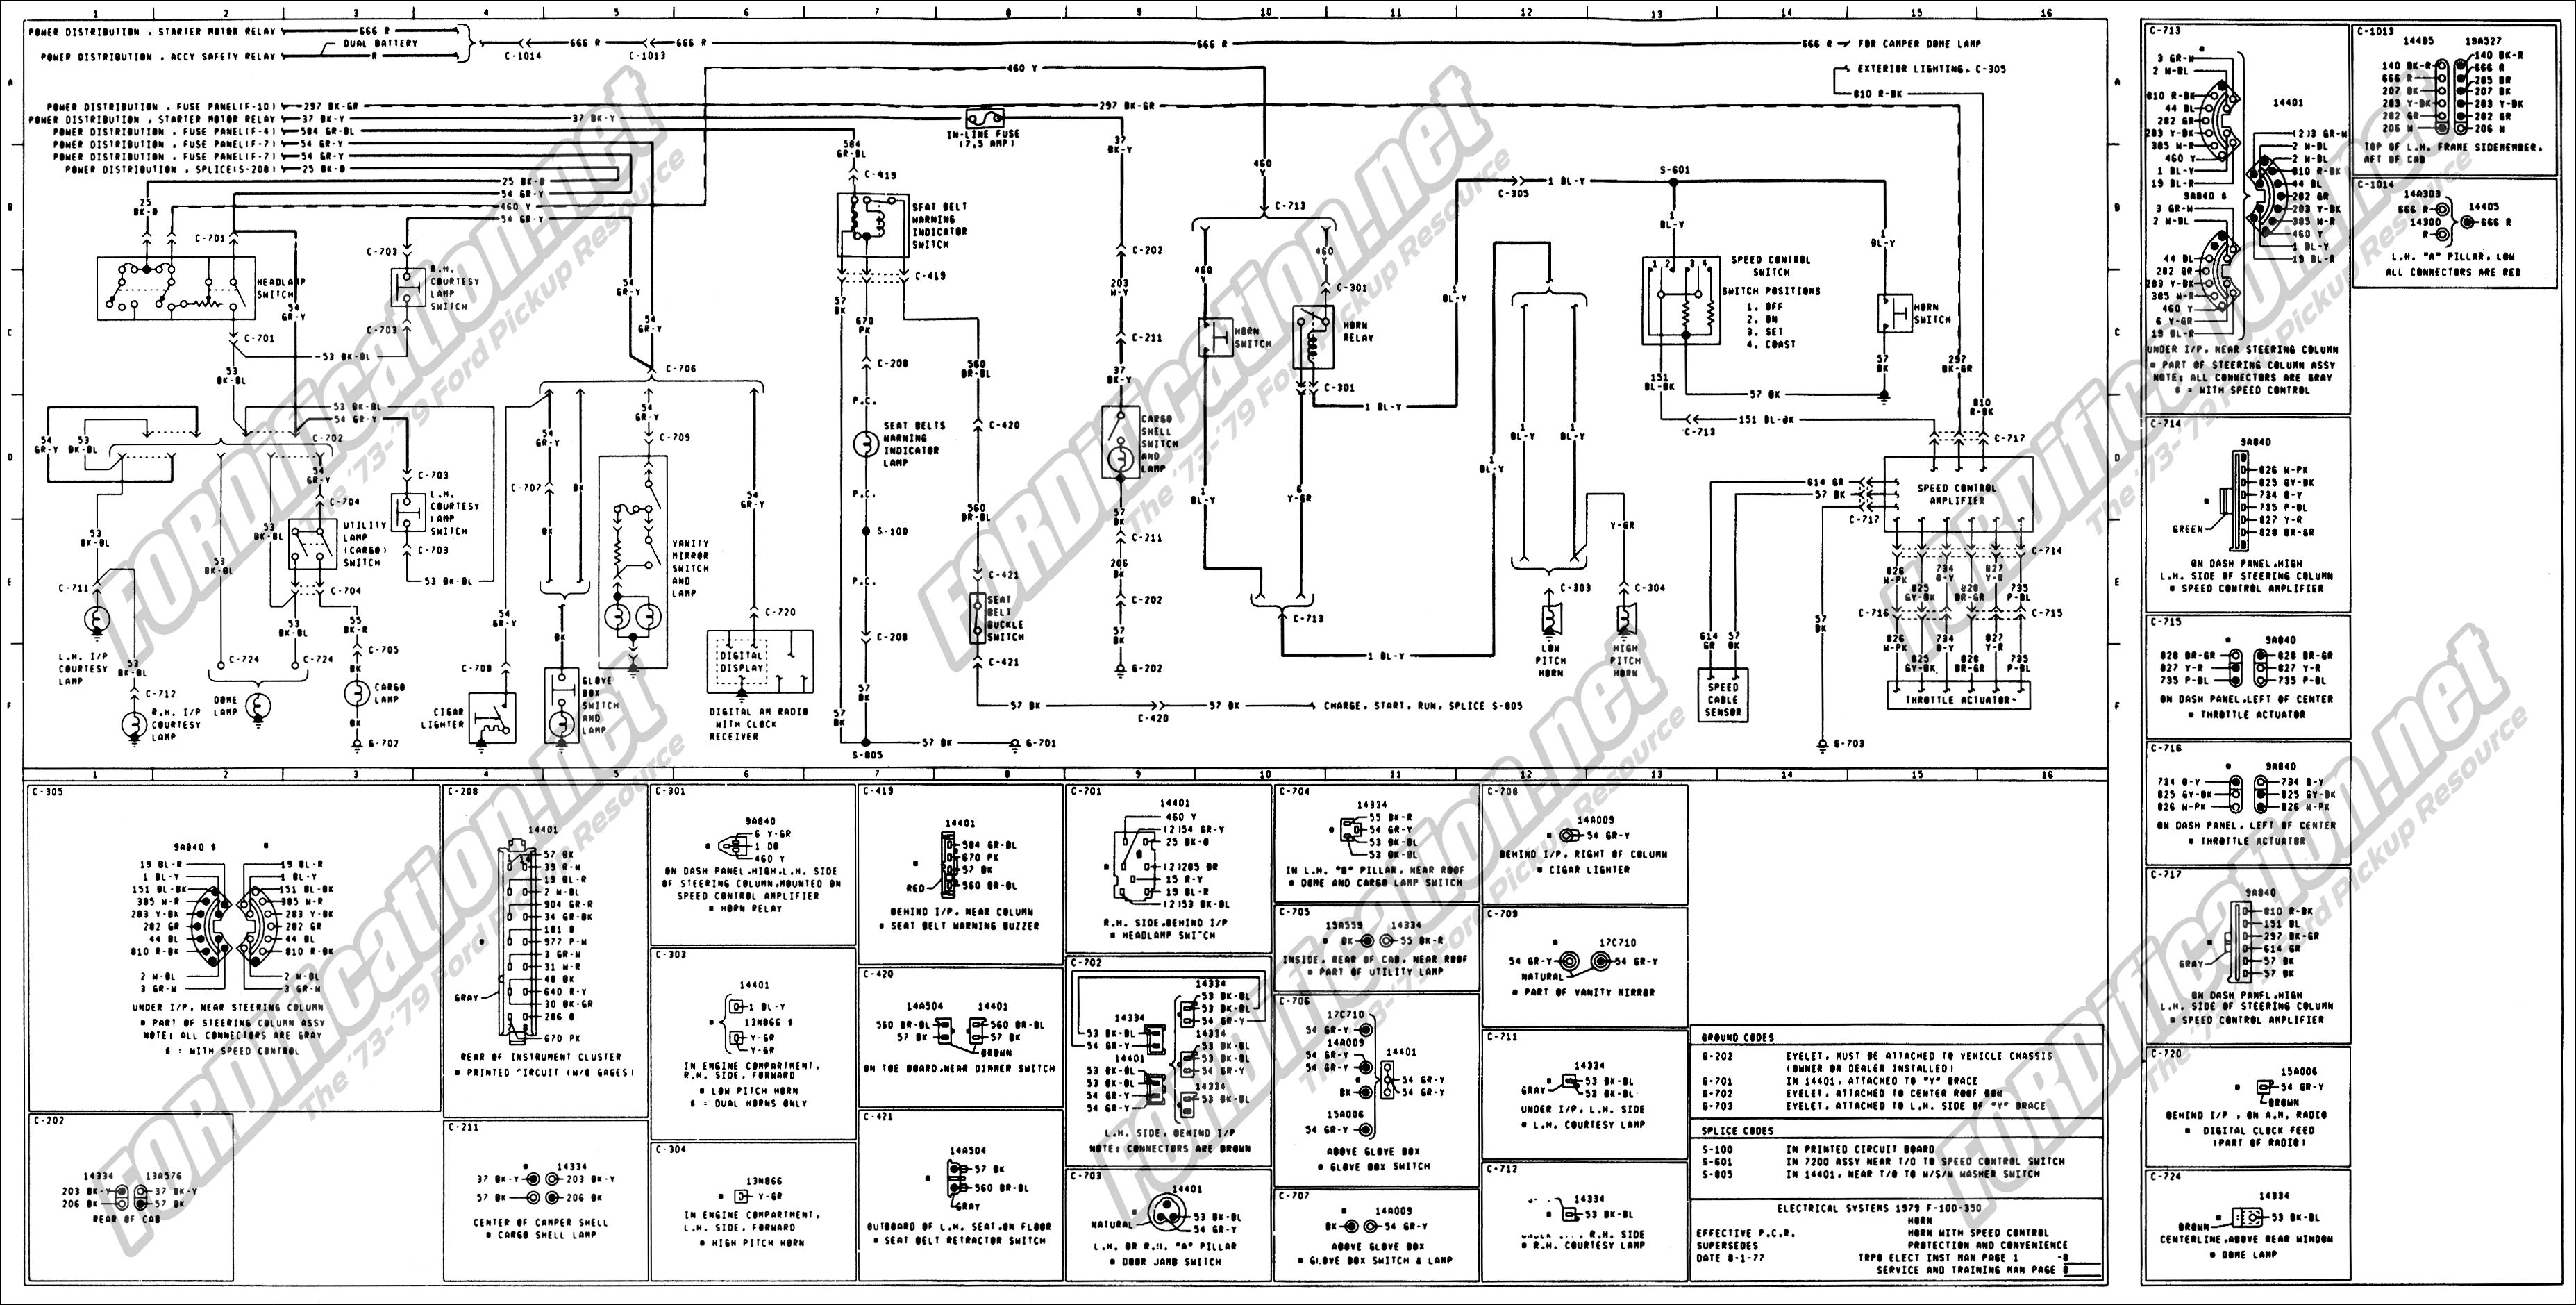 wiring_79master_8of9 1973 1979 ford truck wiring diagrams & schematics fordification net 1971 ford f250 wiring diagram at nearapp.co